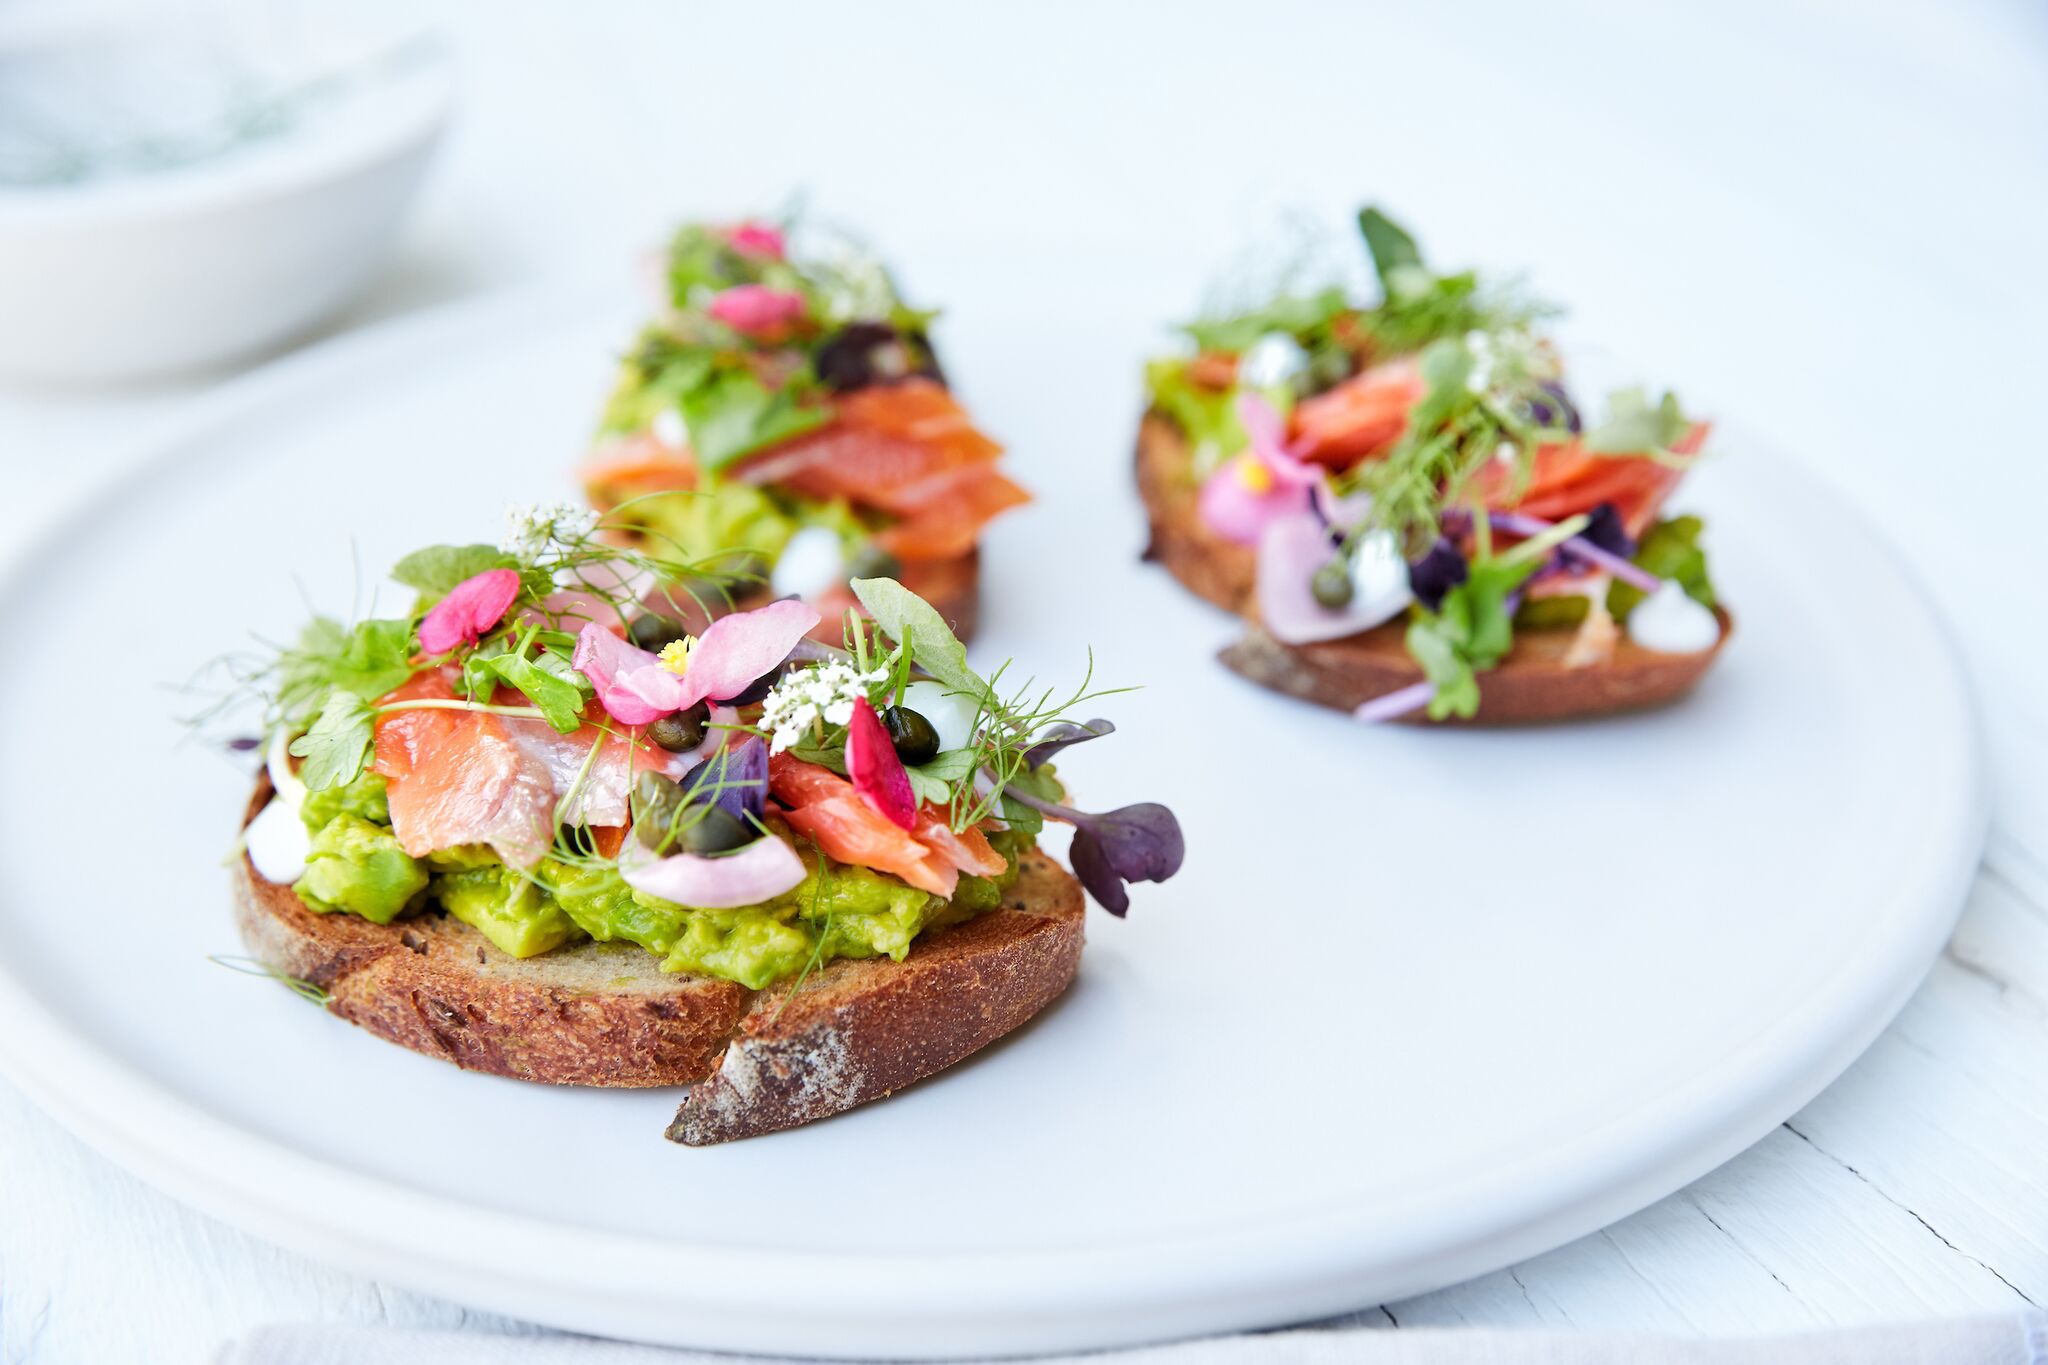 The most glamorous avocado toast you'll ever taste